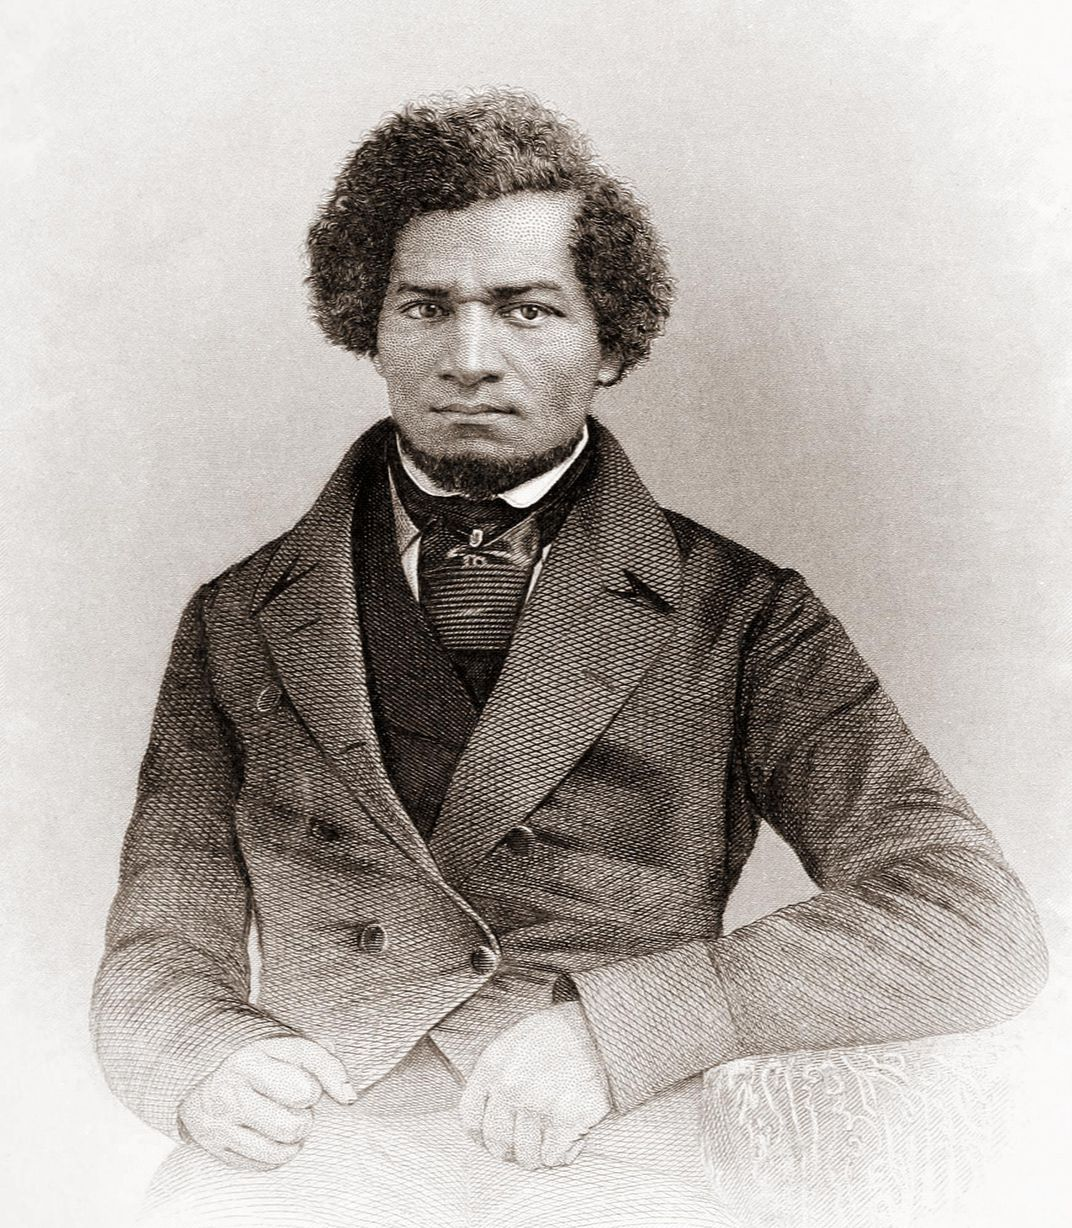 frederick douglass struggles of the american Narrative of the life of frederick douglass, an american slave  in 1881, records  douglass' efforts to keep alive the struggle for racial equality.